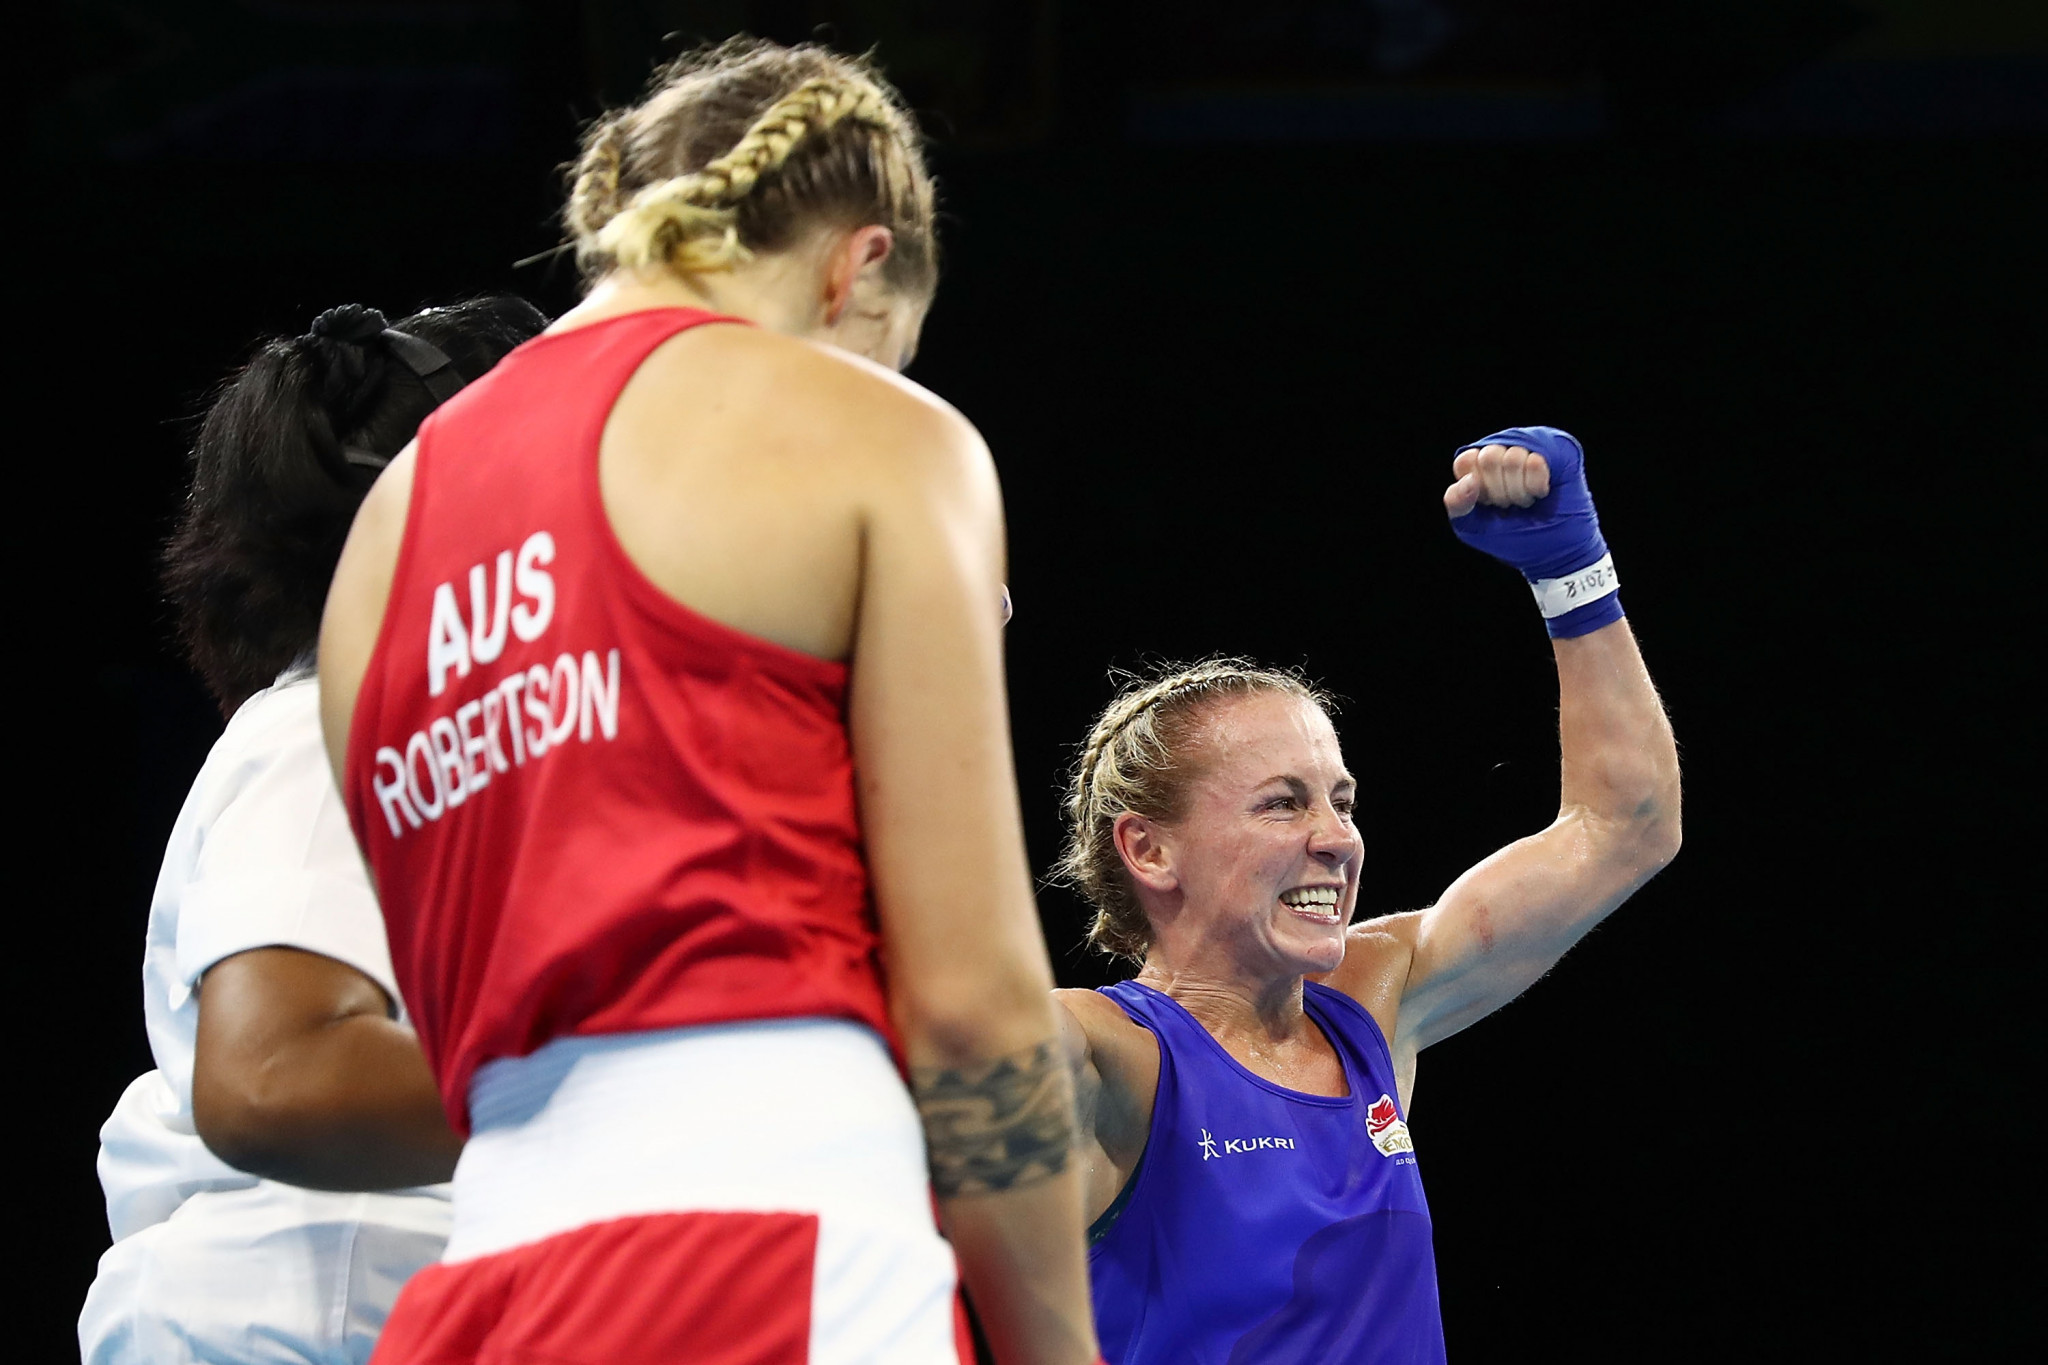 Taylah Robertson, left, lost her only bout at Gold Coast 2018 but still won a bronze medal ©Getty Images